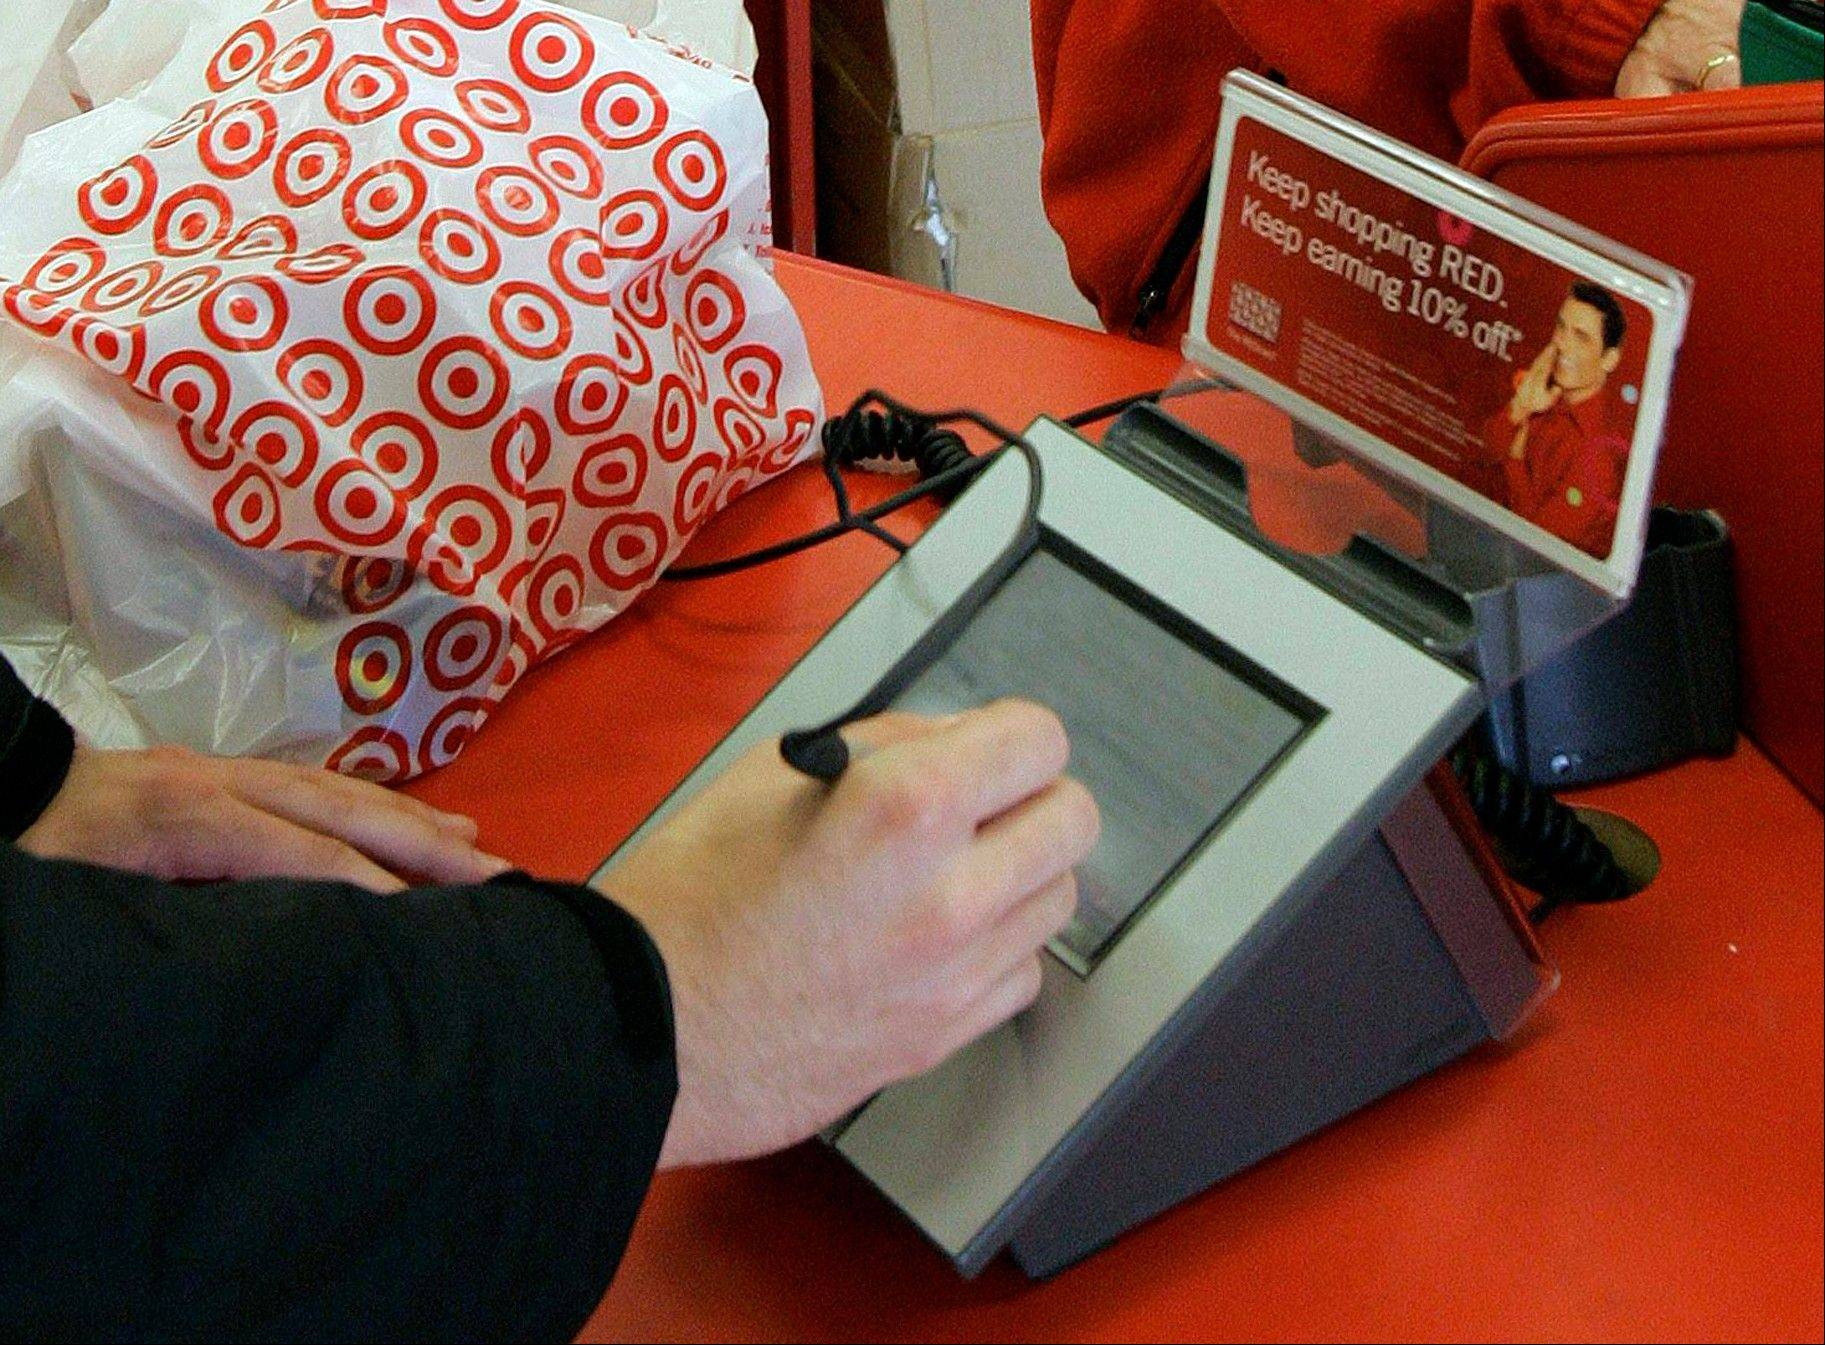 The recent security breach involving Target is believed to have involved 40 million credit and debit card accounts and the personal information of 70 million customers.